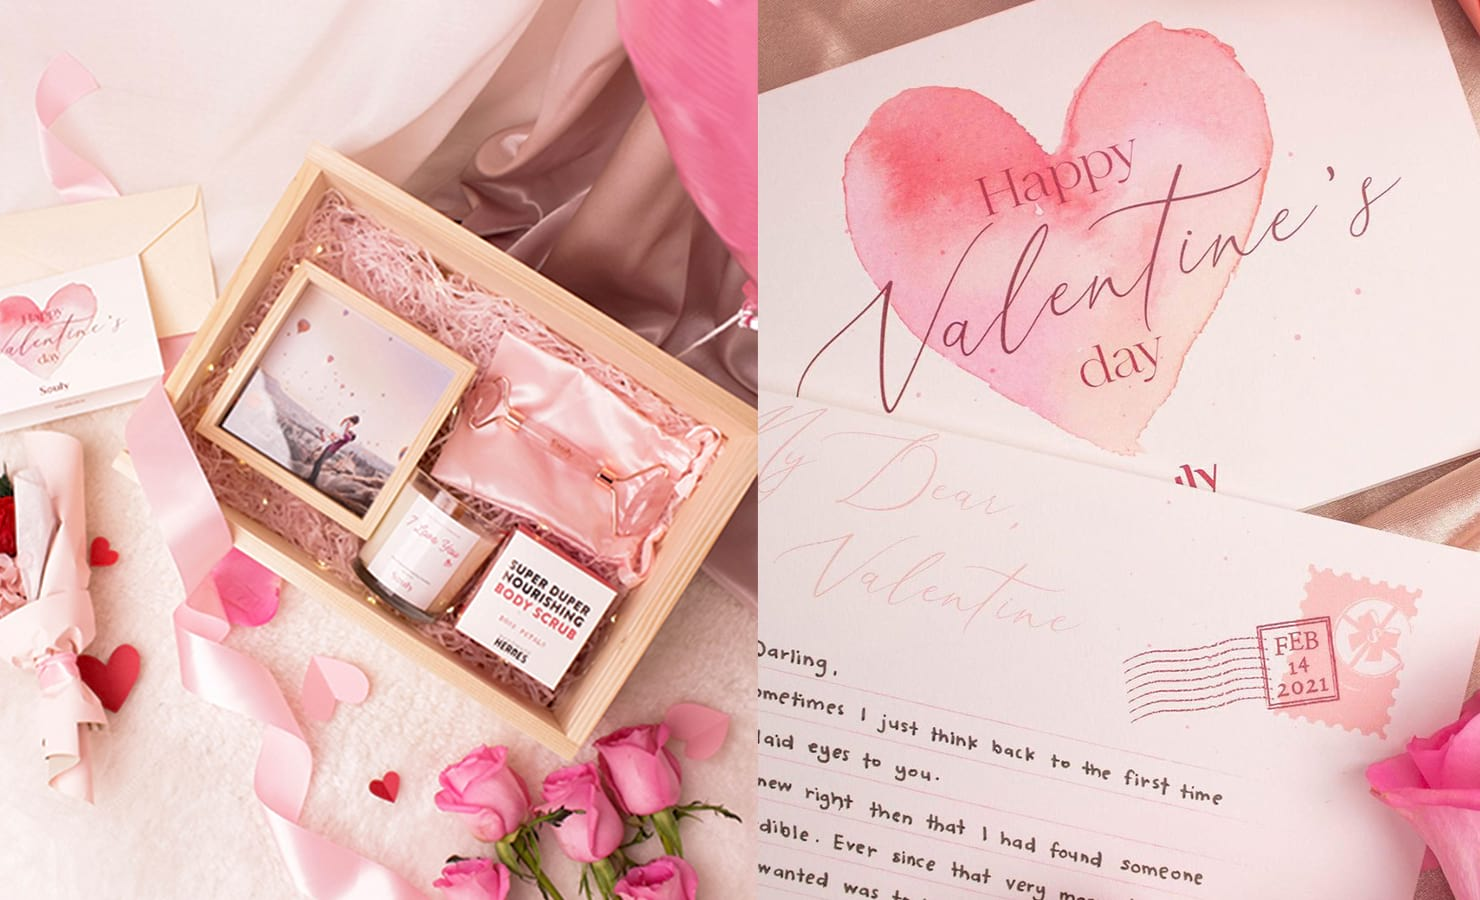 bloomthis-qixi-festival-gift-guide-2021-15-souly-love-letter-care-package